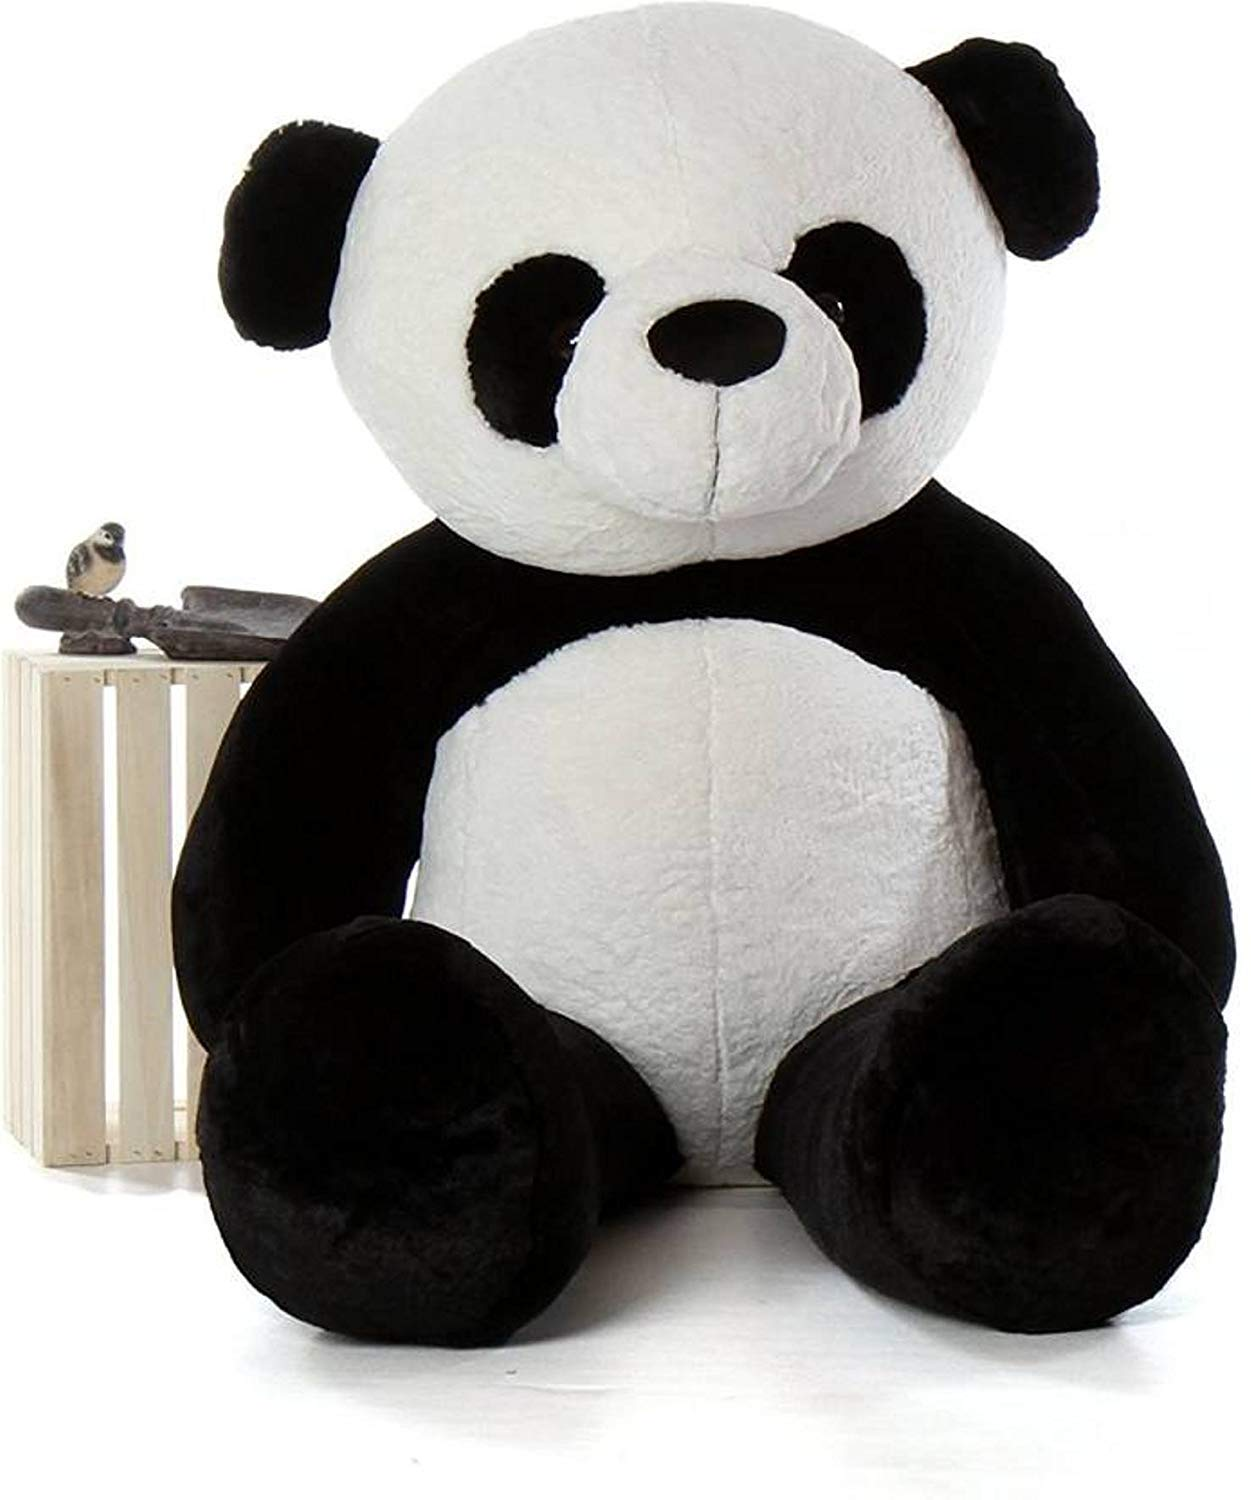 Anxiety Stuffed Animal, Buy Minitrees Soft Plush Fabric 3 Feet Cute Panda Teddy Bear Cute Soft Toy 90 Cm Online At Low Prices In India Amazon In